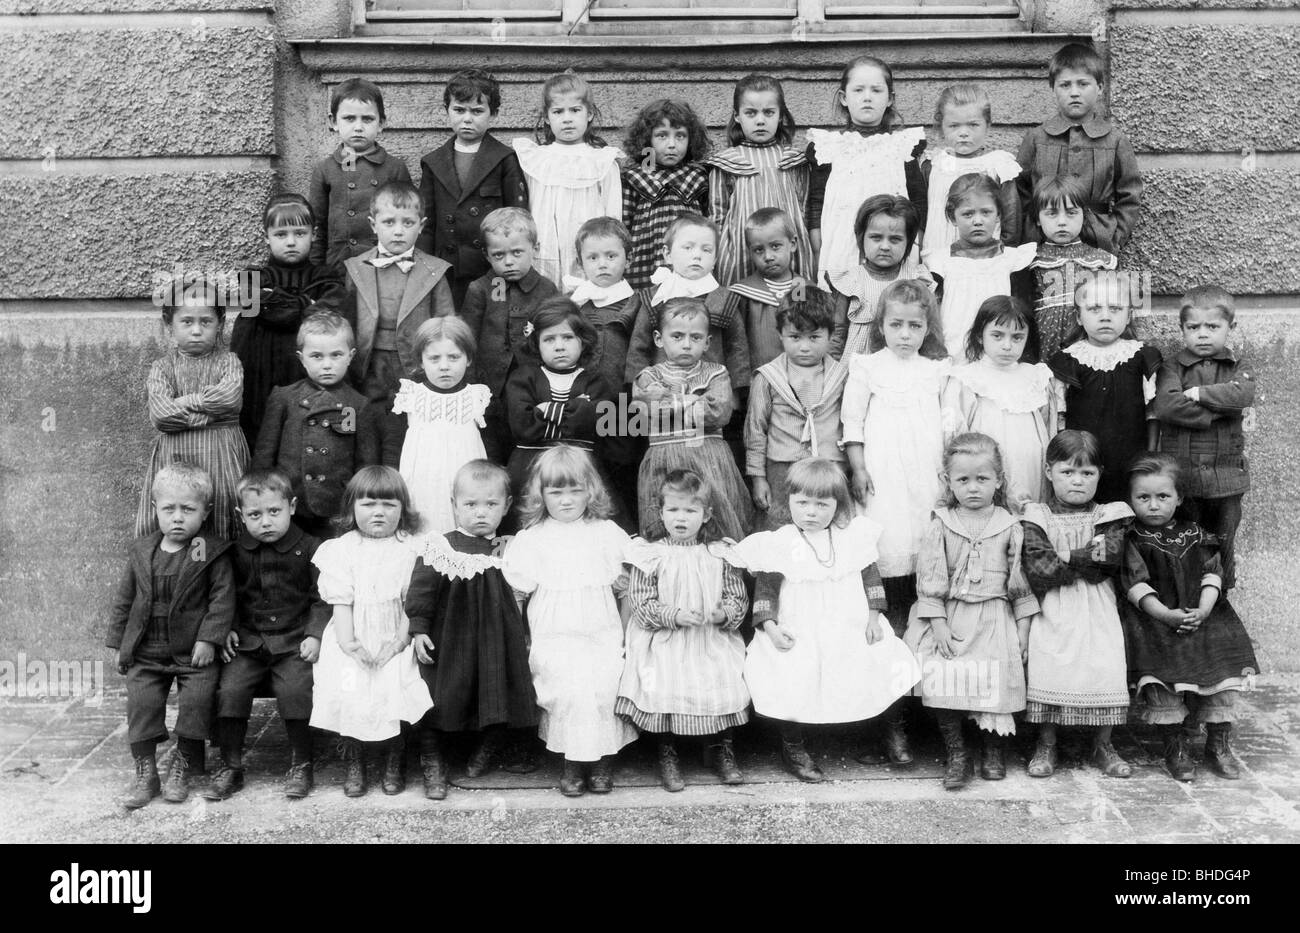 people, children, infants (up to 5 years), group picture, circa 1900, Additional-Rights-Clearances-NA - Stock Image